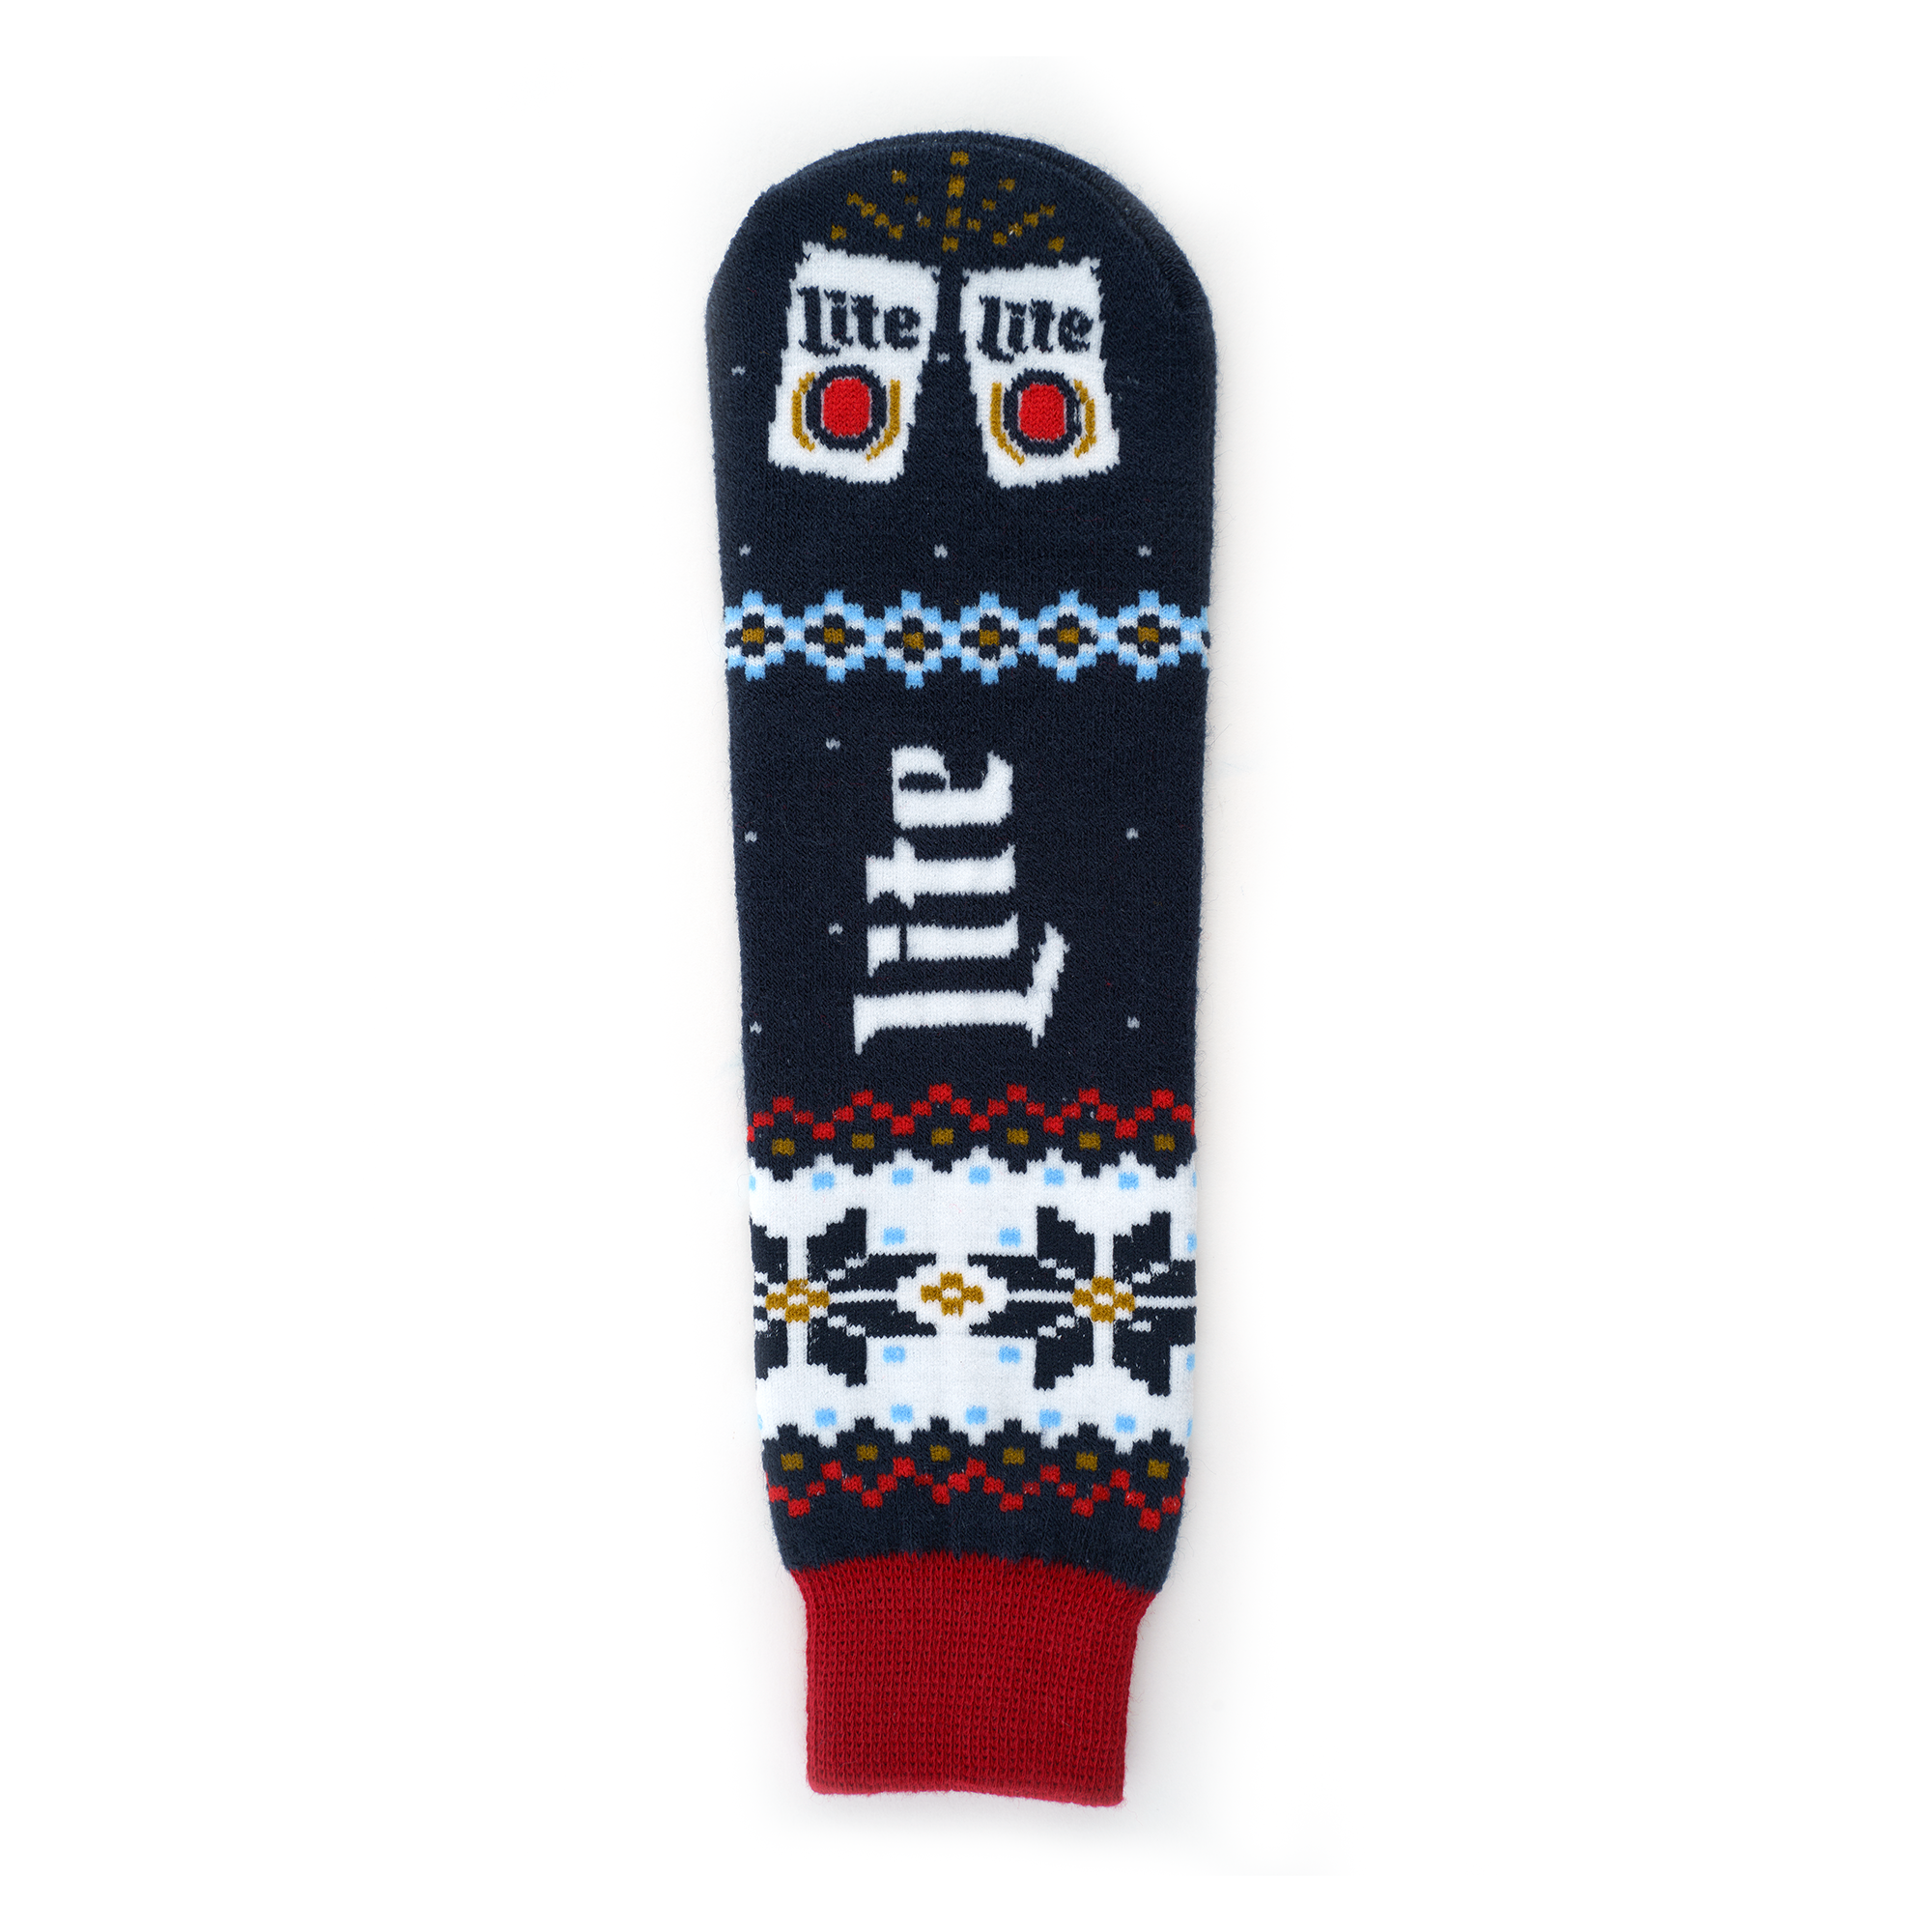 MILLER LITE TAP HANDLE UGLY SWEATER